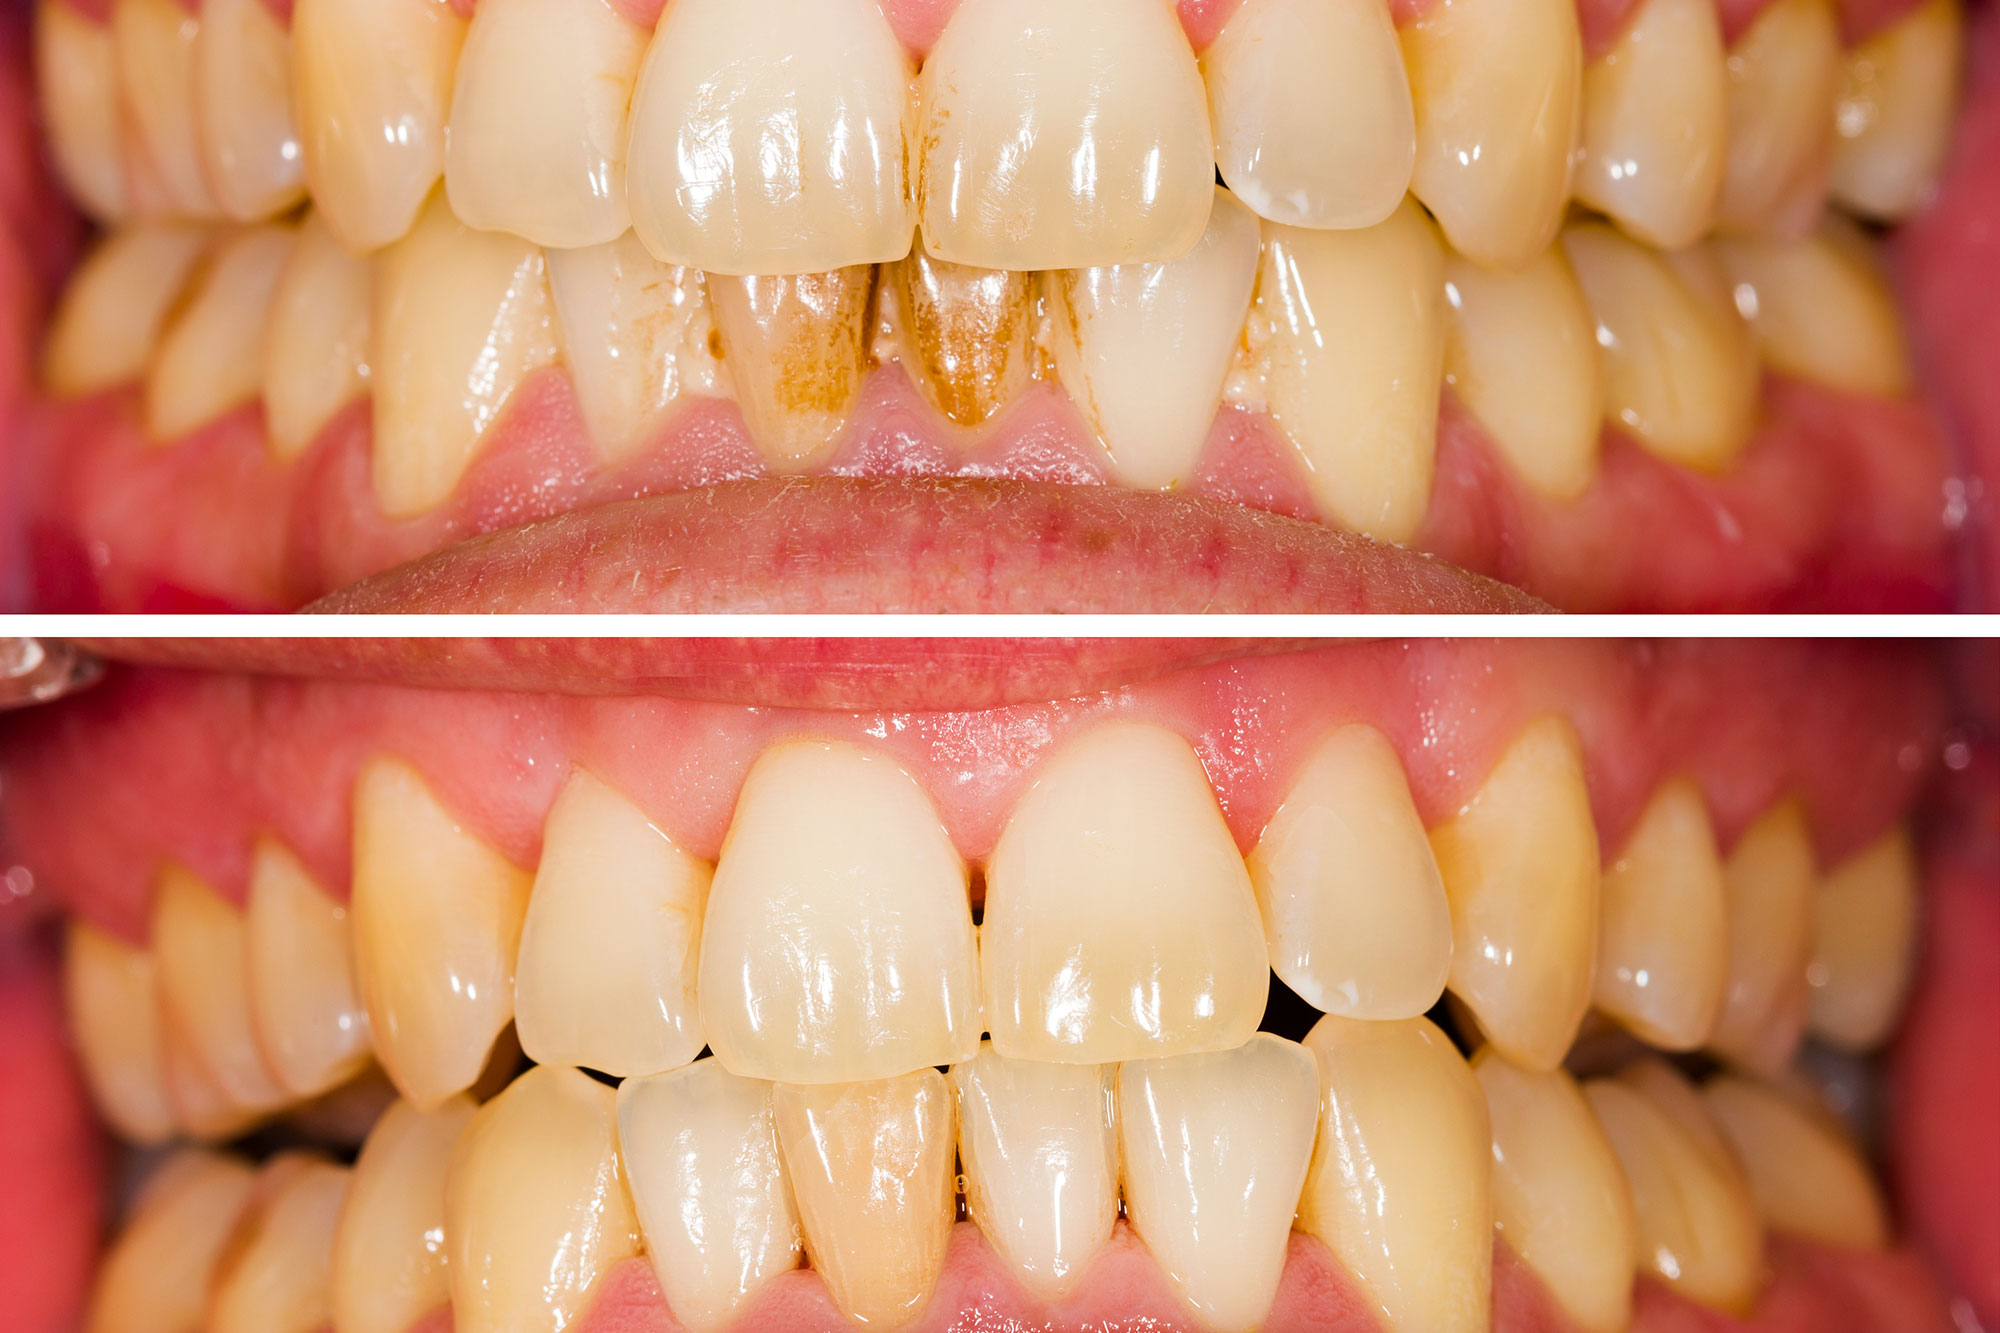 Dental-Planing-and-Dental-Scaling